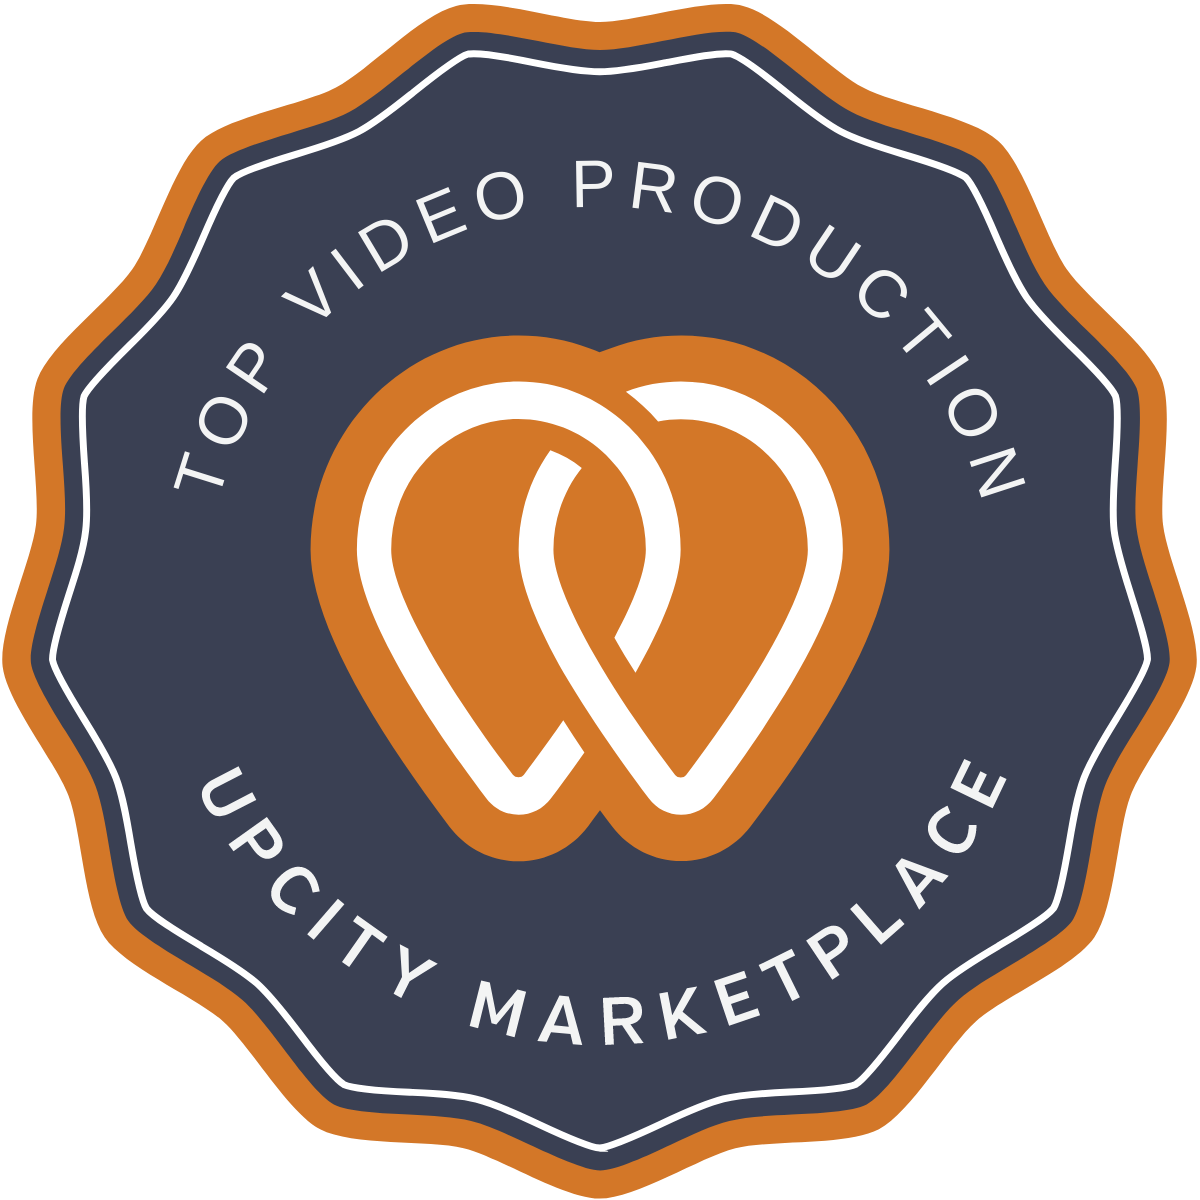 TOP VIDEO PRODUCTION